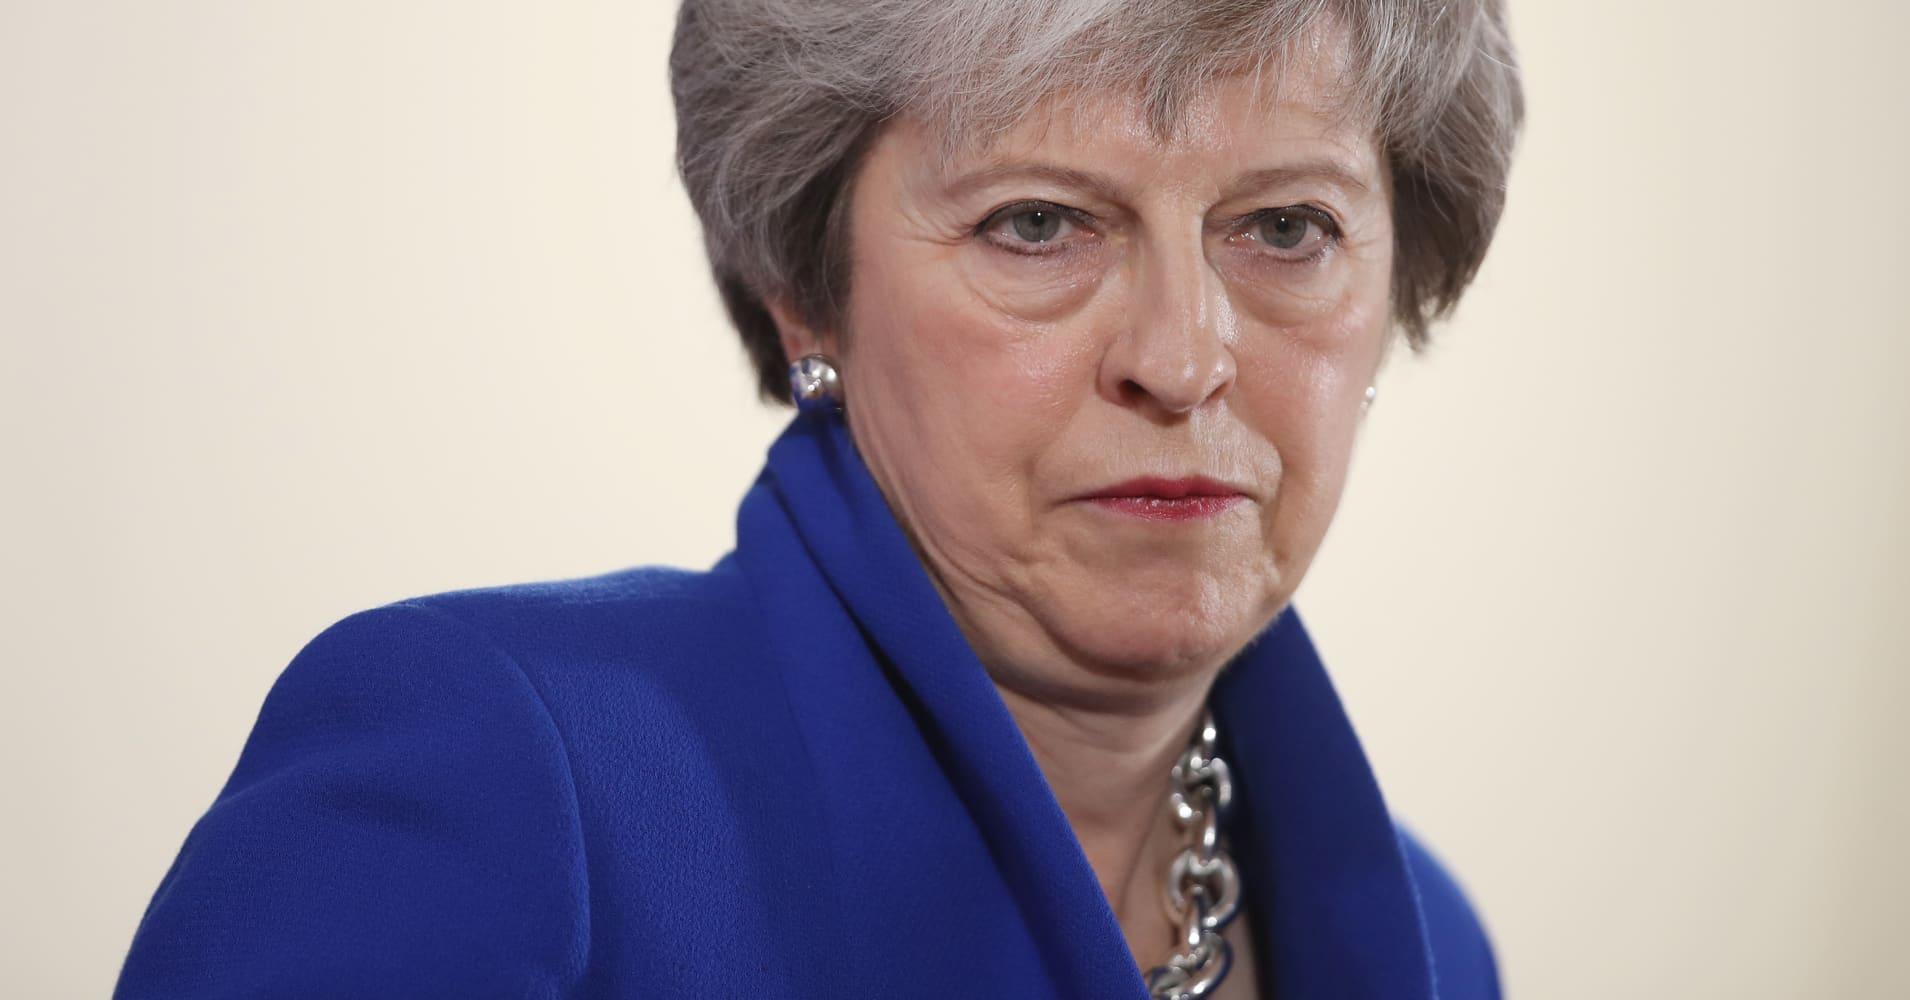 Plans to break the current Brexit impasse could land Theresa May in even deeper trouble